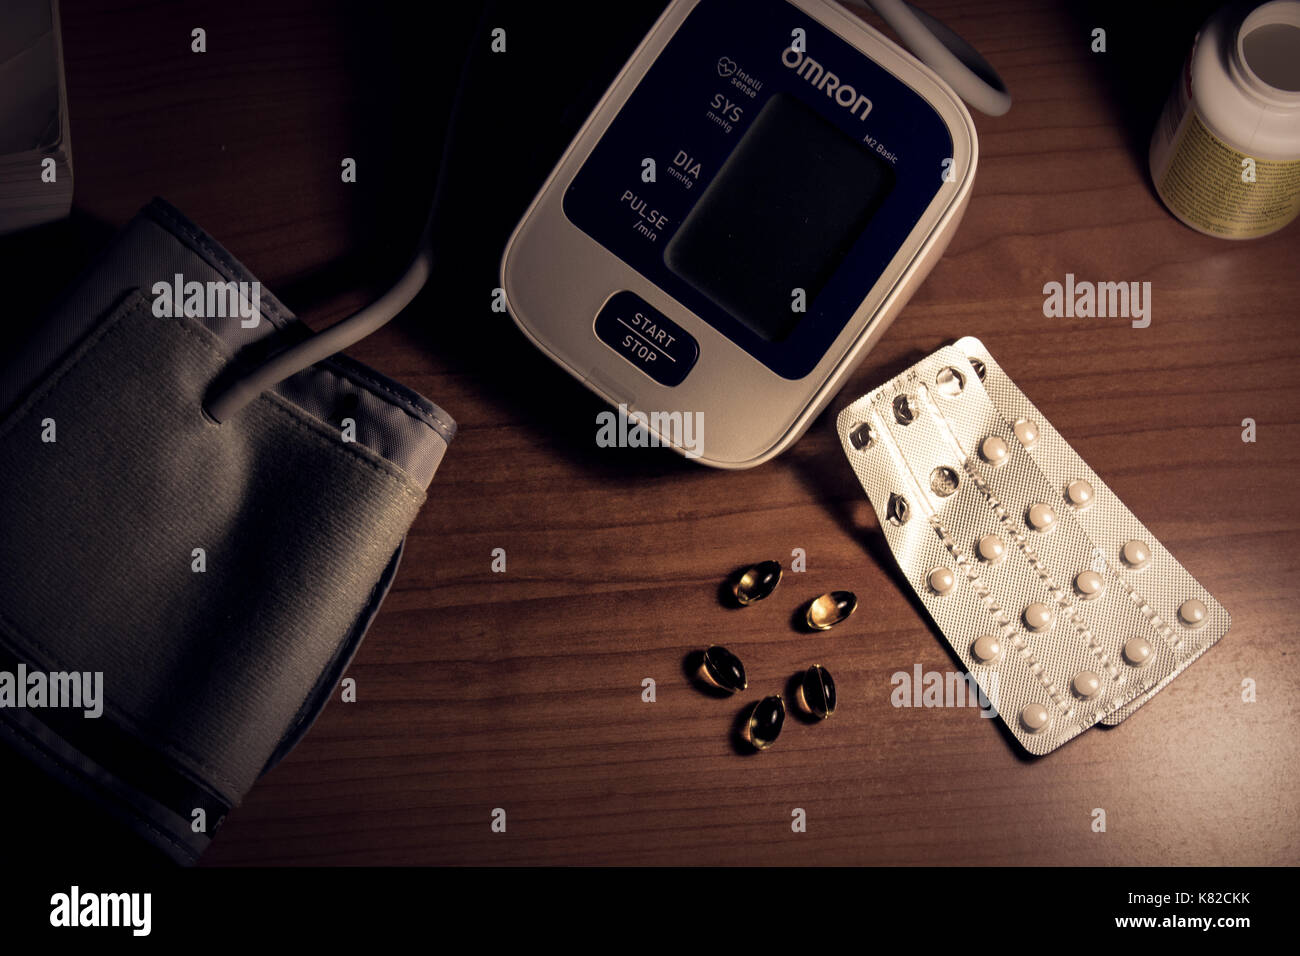 blood pressure monitor and pills on a desk - Stock Image